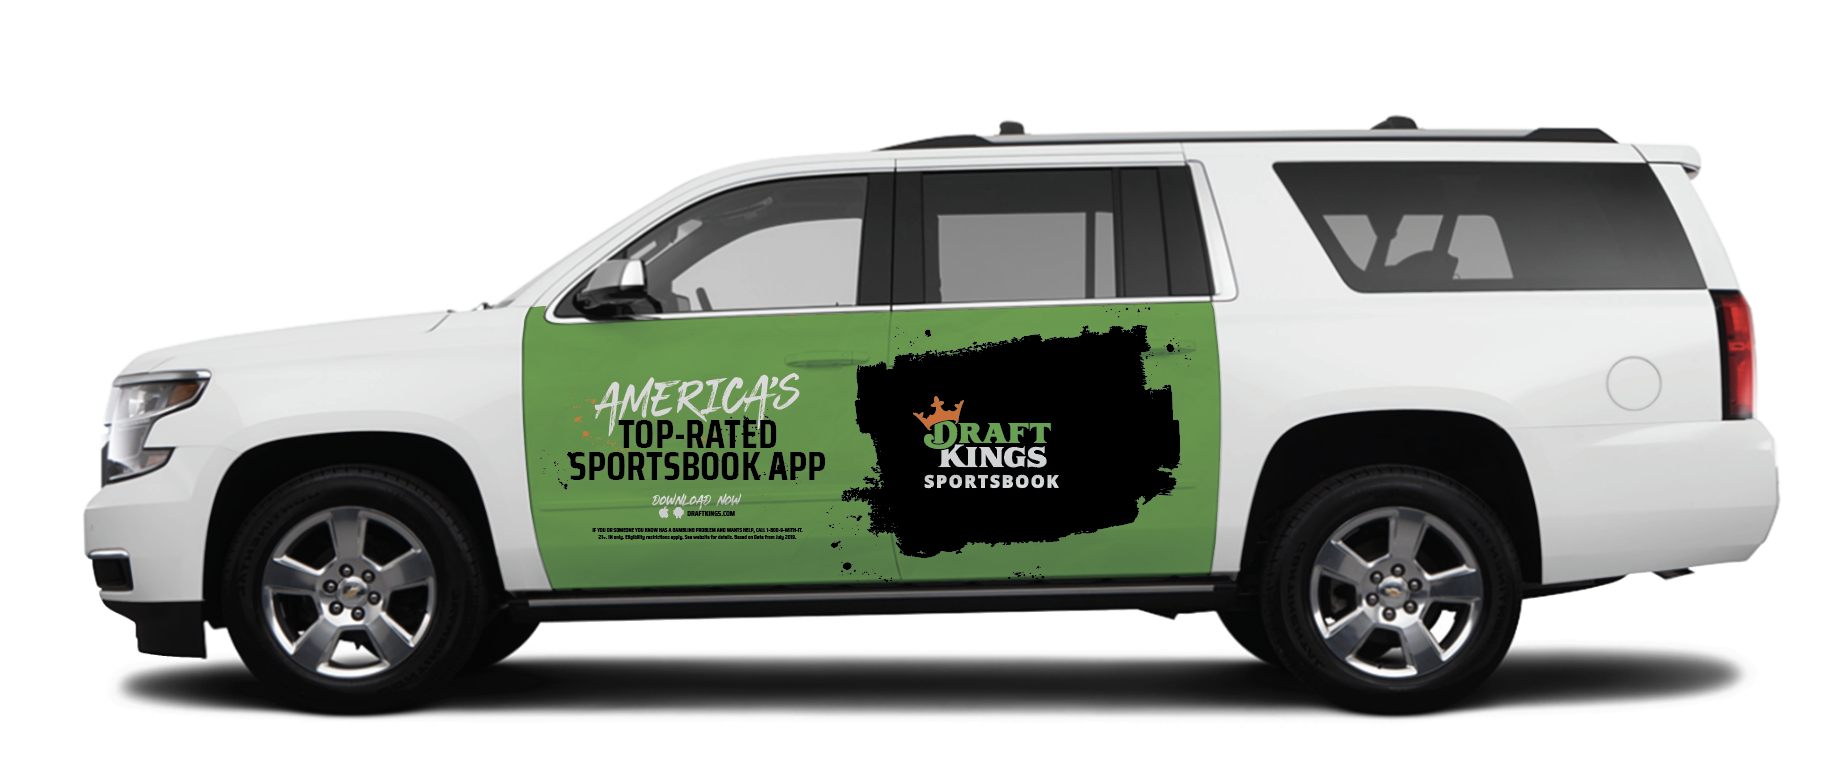 - We're proud to partner with DraftKings to provide rideshare drivers in South Bend an easy way to earn money on their vehicle. Sign up today!